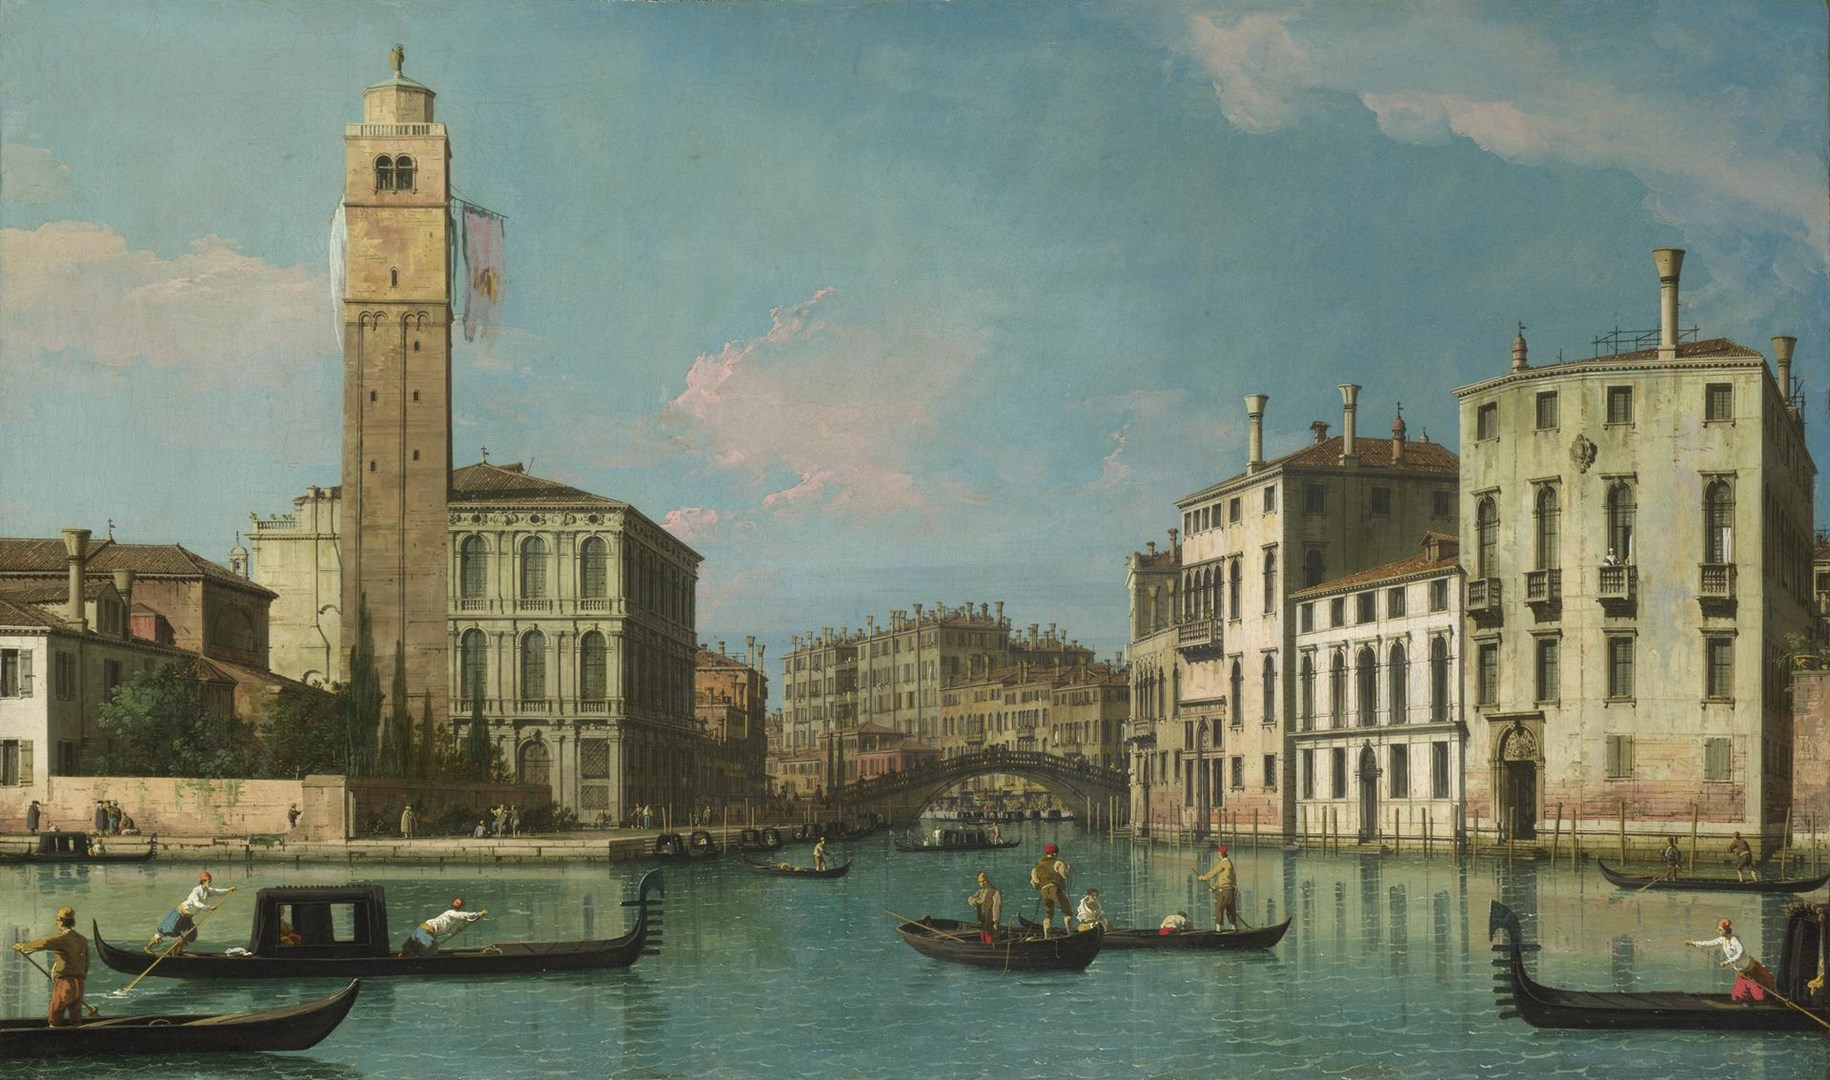 Venice: Entrance to the Cannaregio by Canaletto